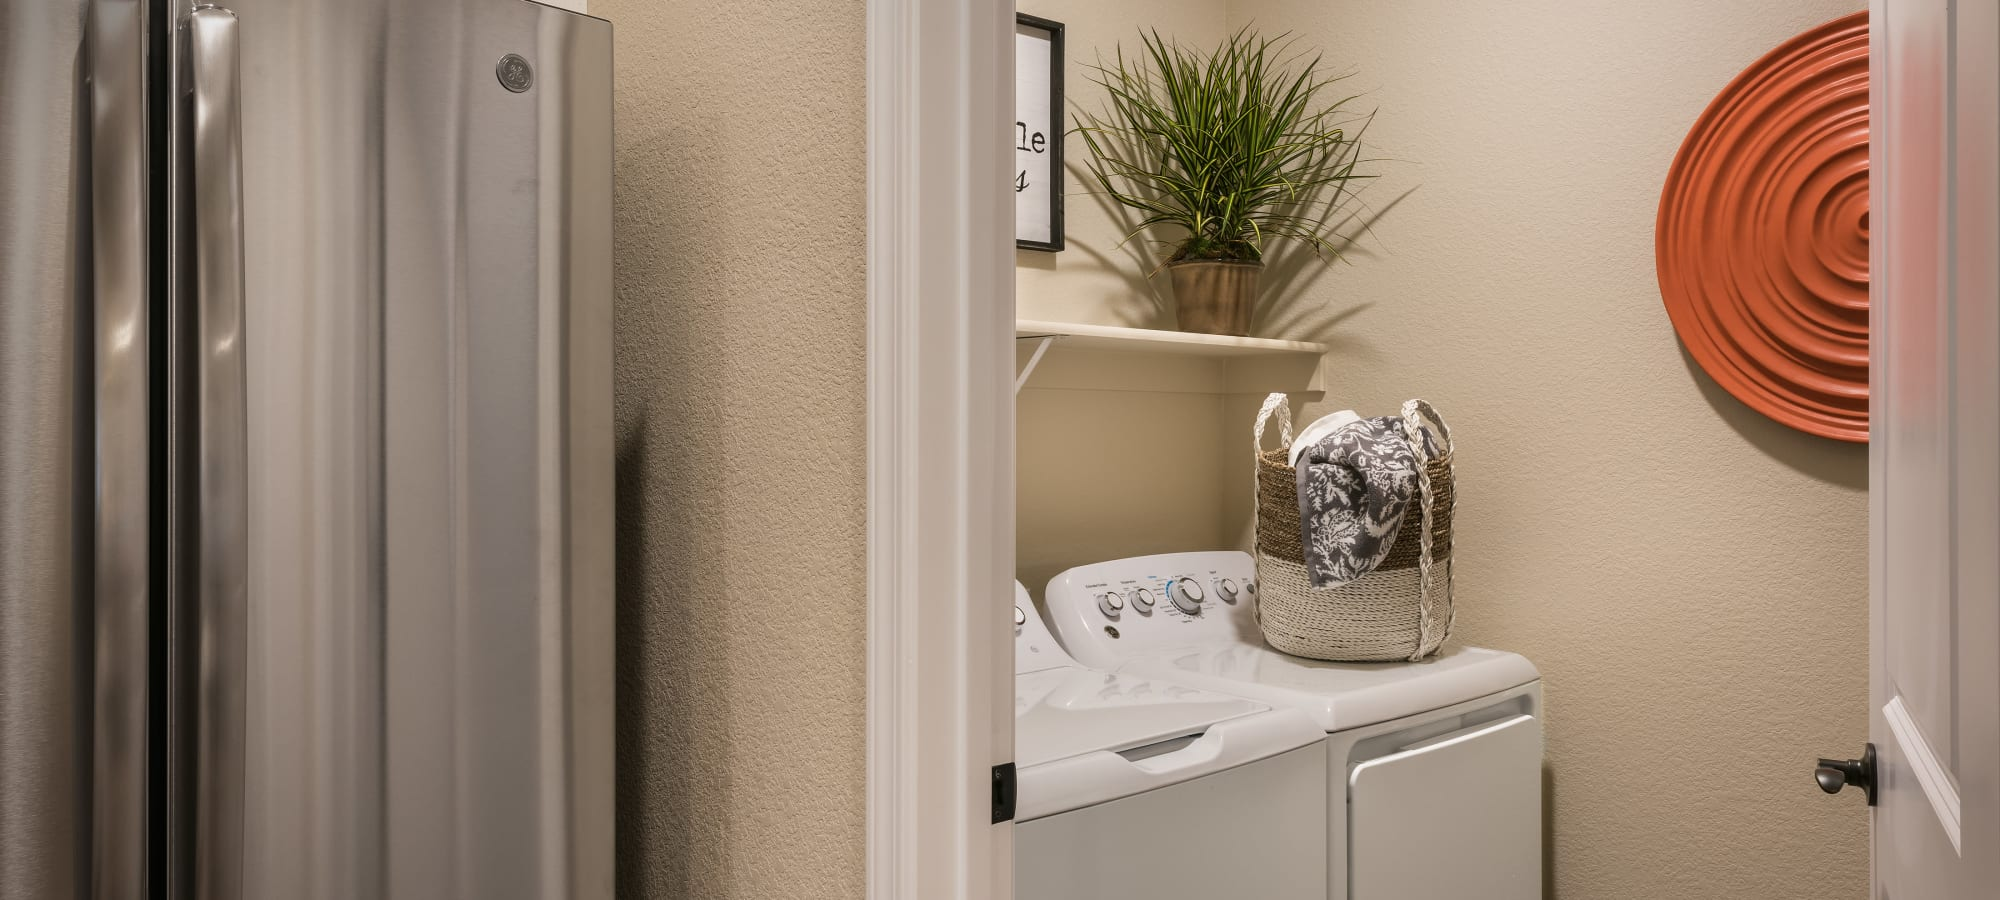 In-home washer and dryer at San Artes in Scottsdale, Arizona